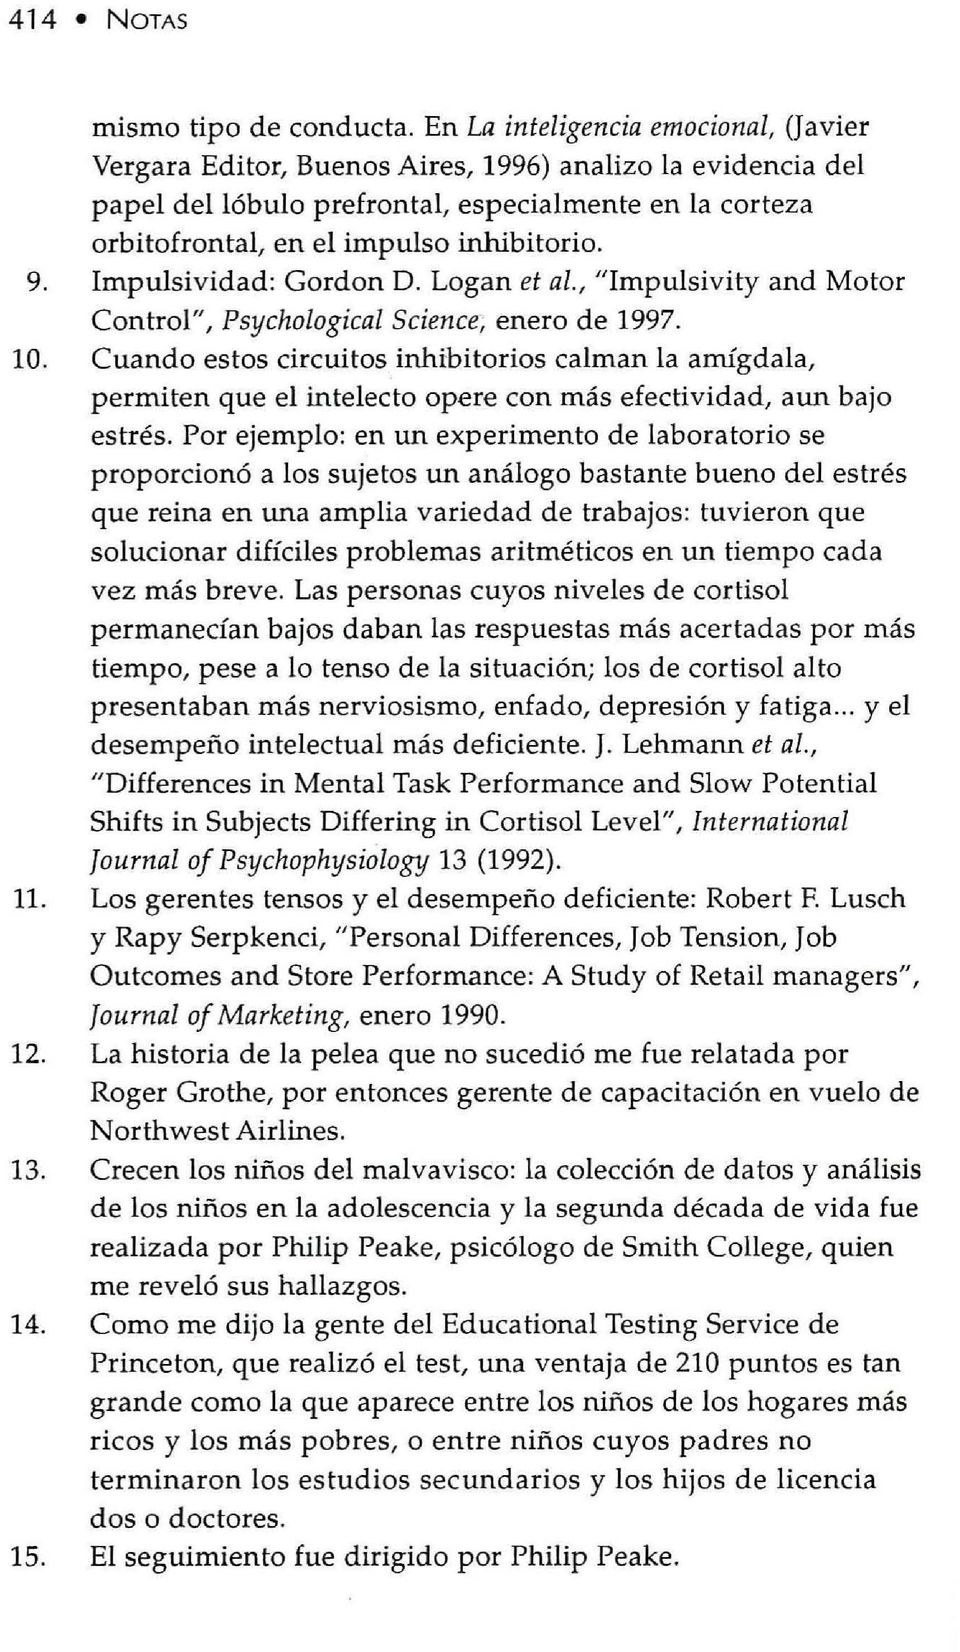 "Impulsividad: Gordon D. Logan et al., ""Impulsivity and Motor Control"", Psychological Science enero de 1997. 10."